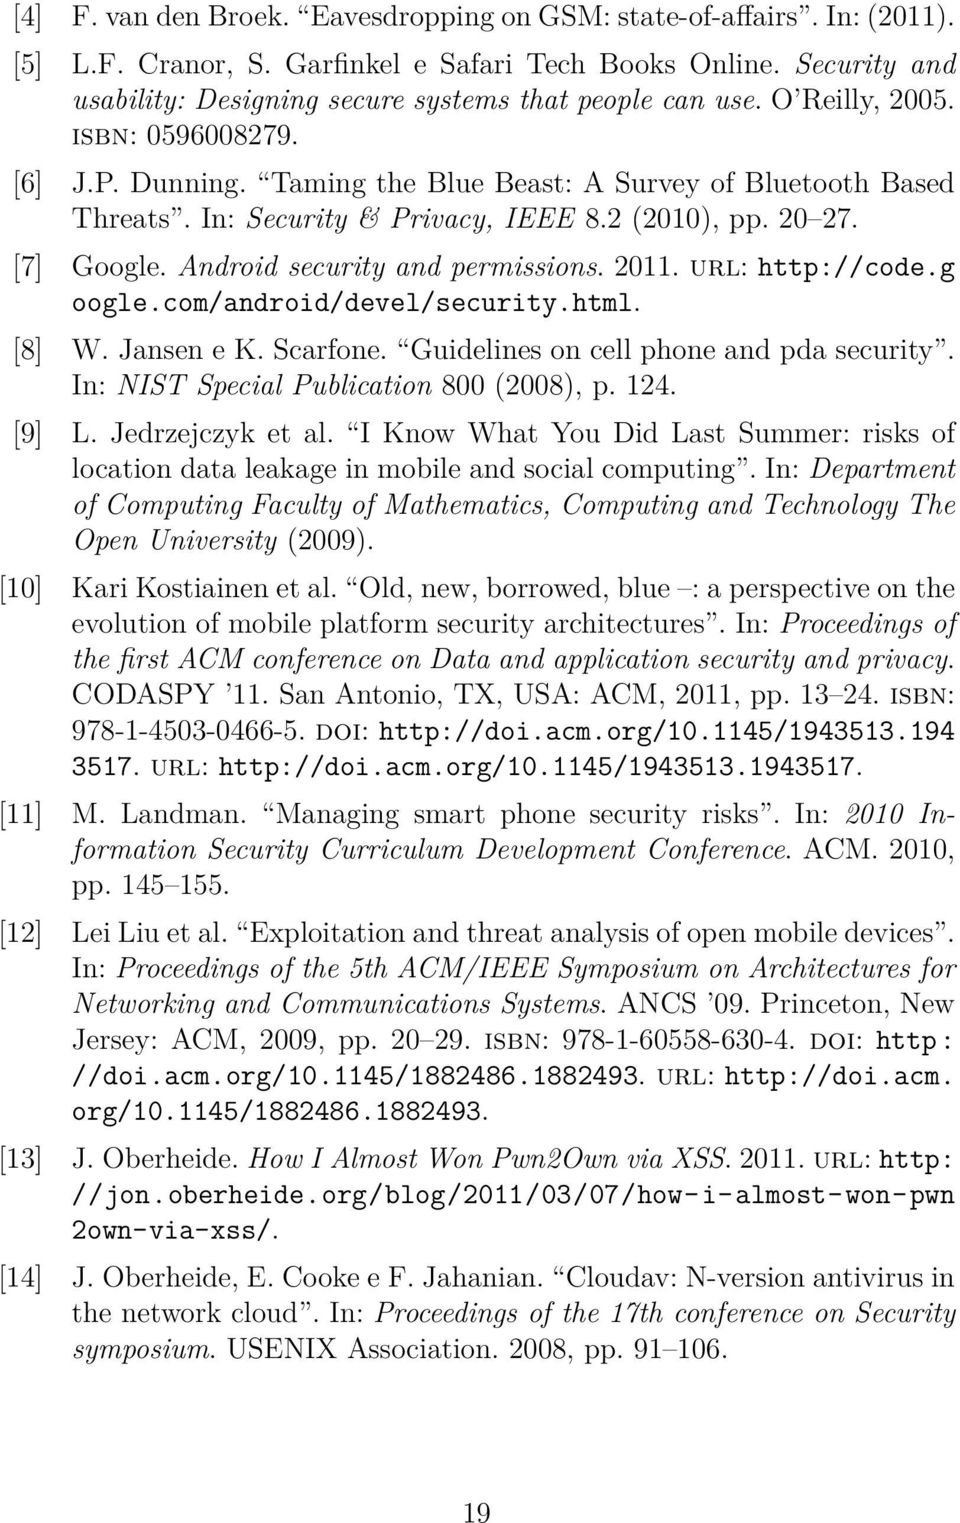 In: Security & Privacy, IEEE 8.2 (2010), pp. 20 27. [7] Google. Android security and permissions. 2011. url: http://code.g oogle.com/android/devel/security.html. [8] W. Jansen e K. Scarfone.